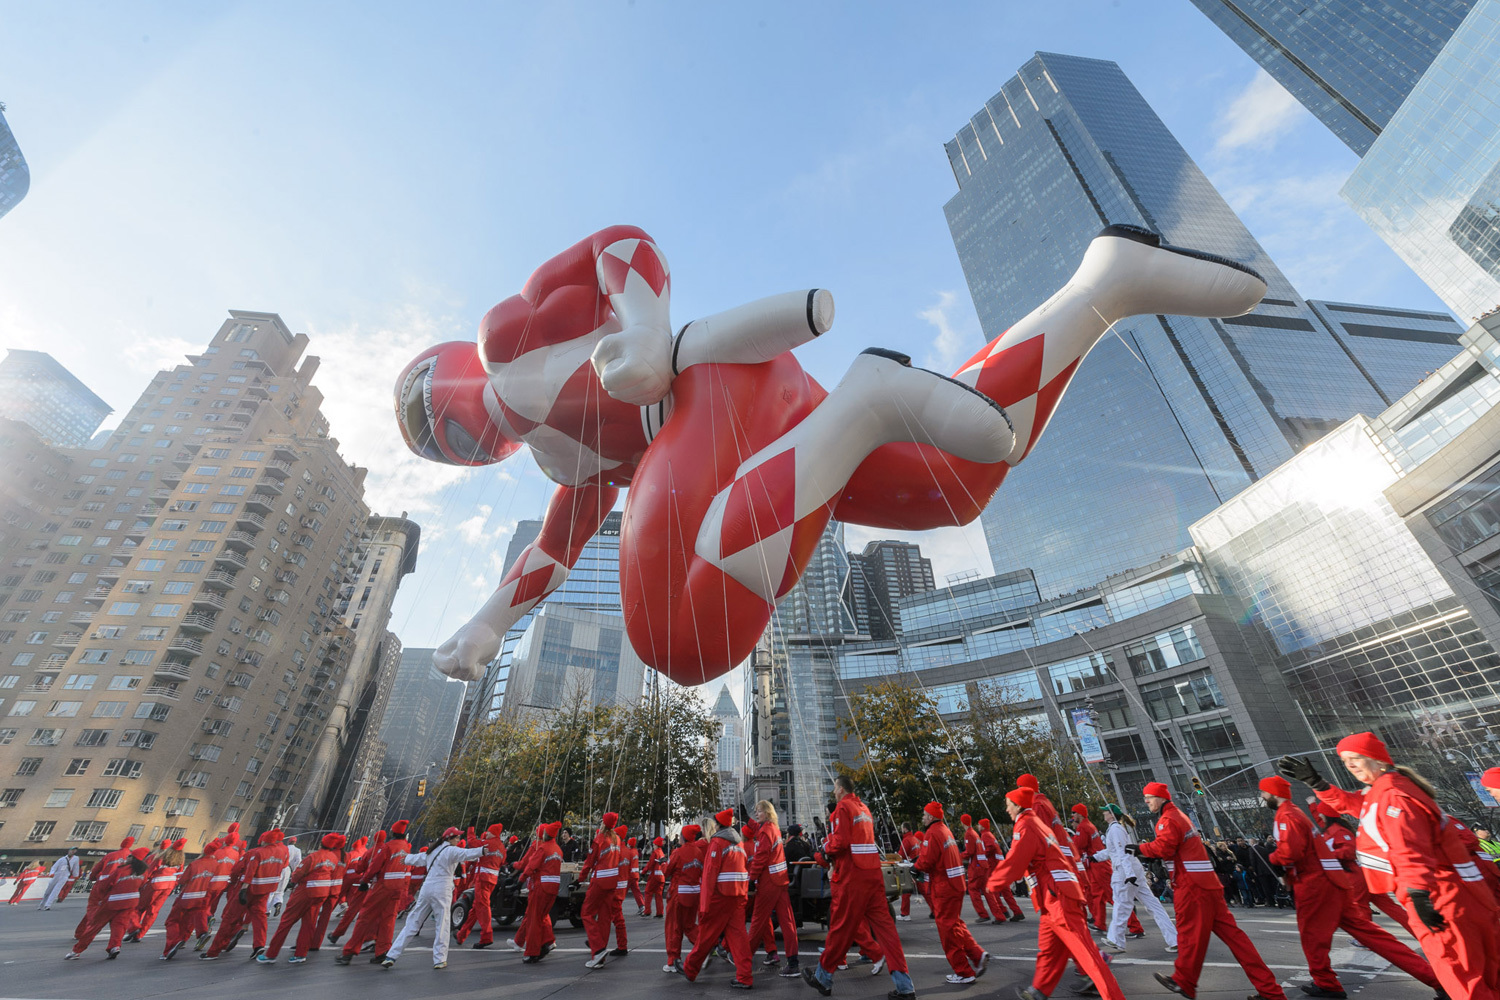 See photos of the 2015 Macy's Thanksgiving Day Parade